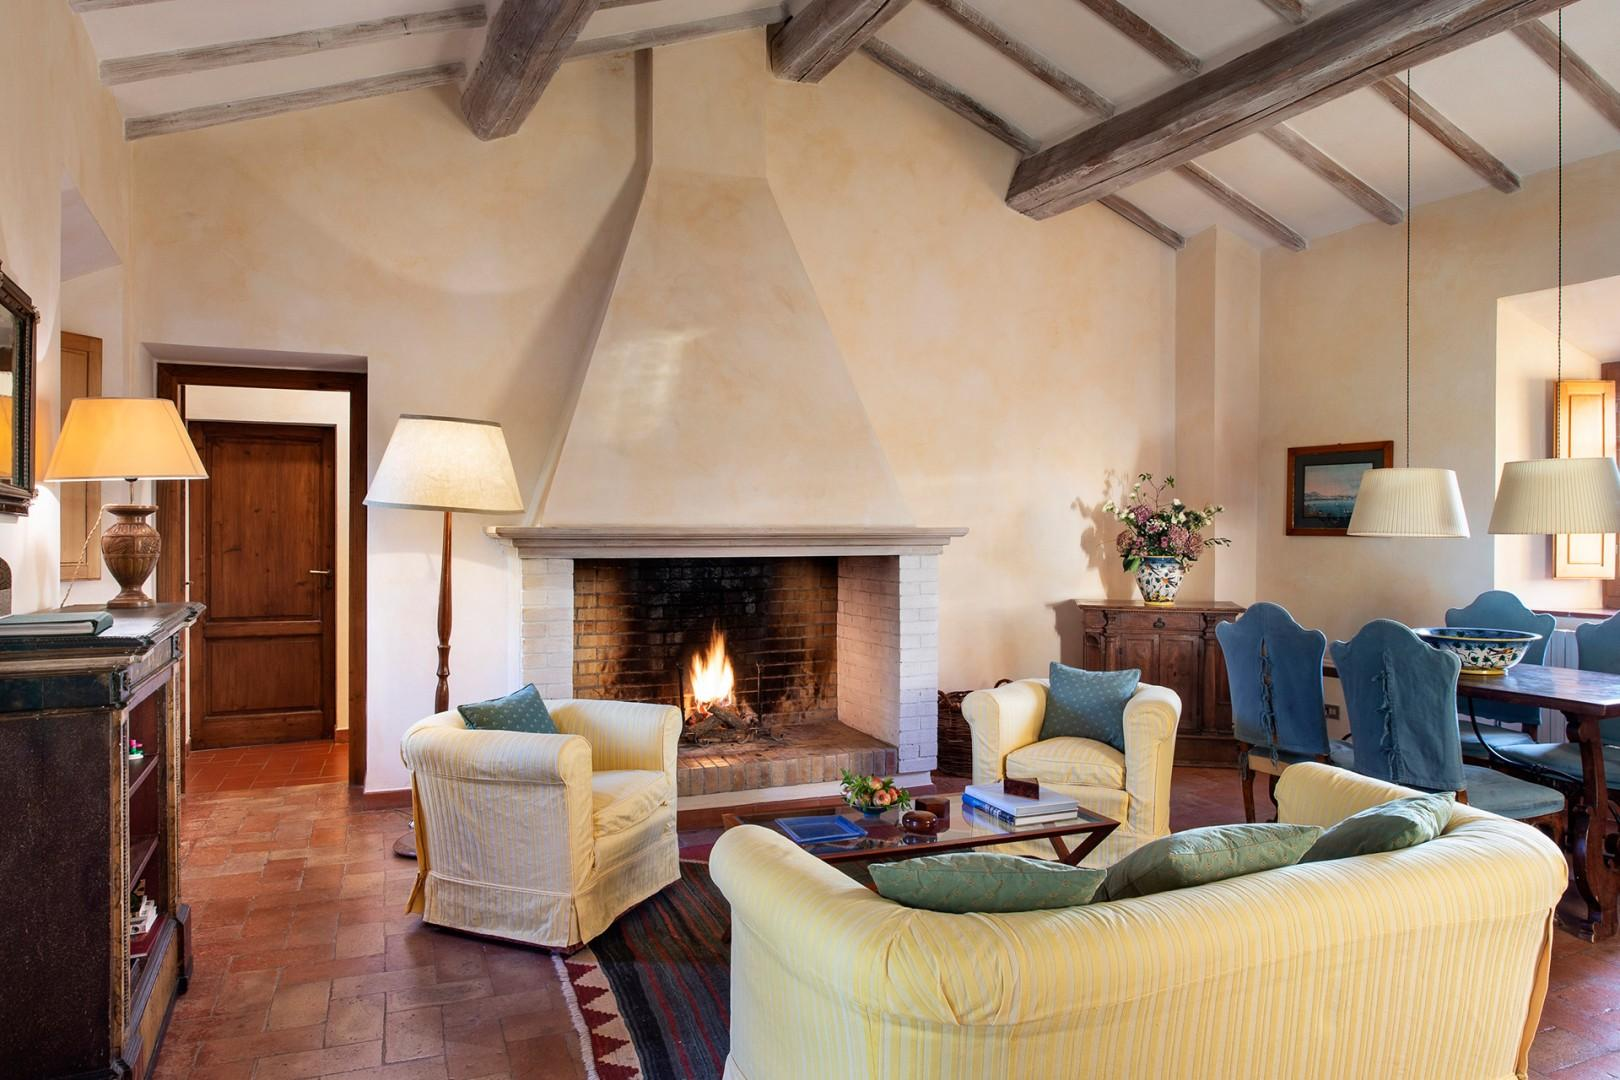 Tiglio apartment is a spacious luxury apartment for four. Living room has a cozy fireplace.